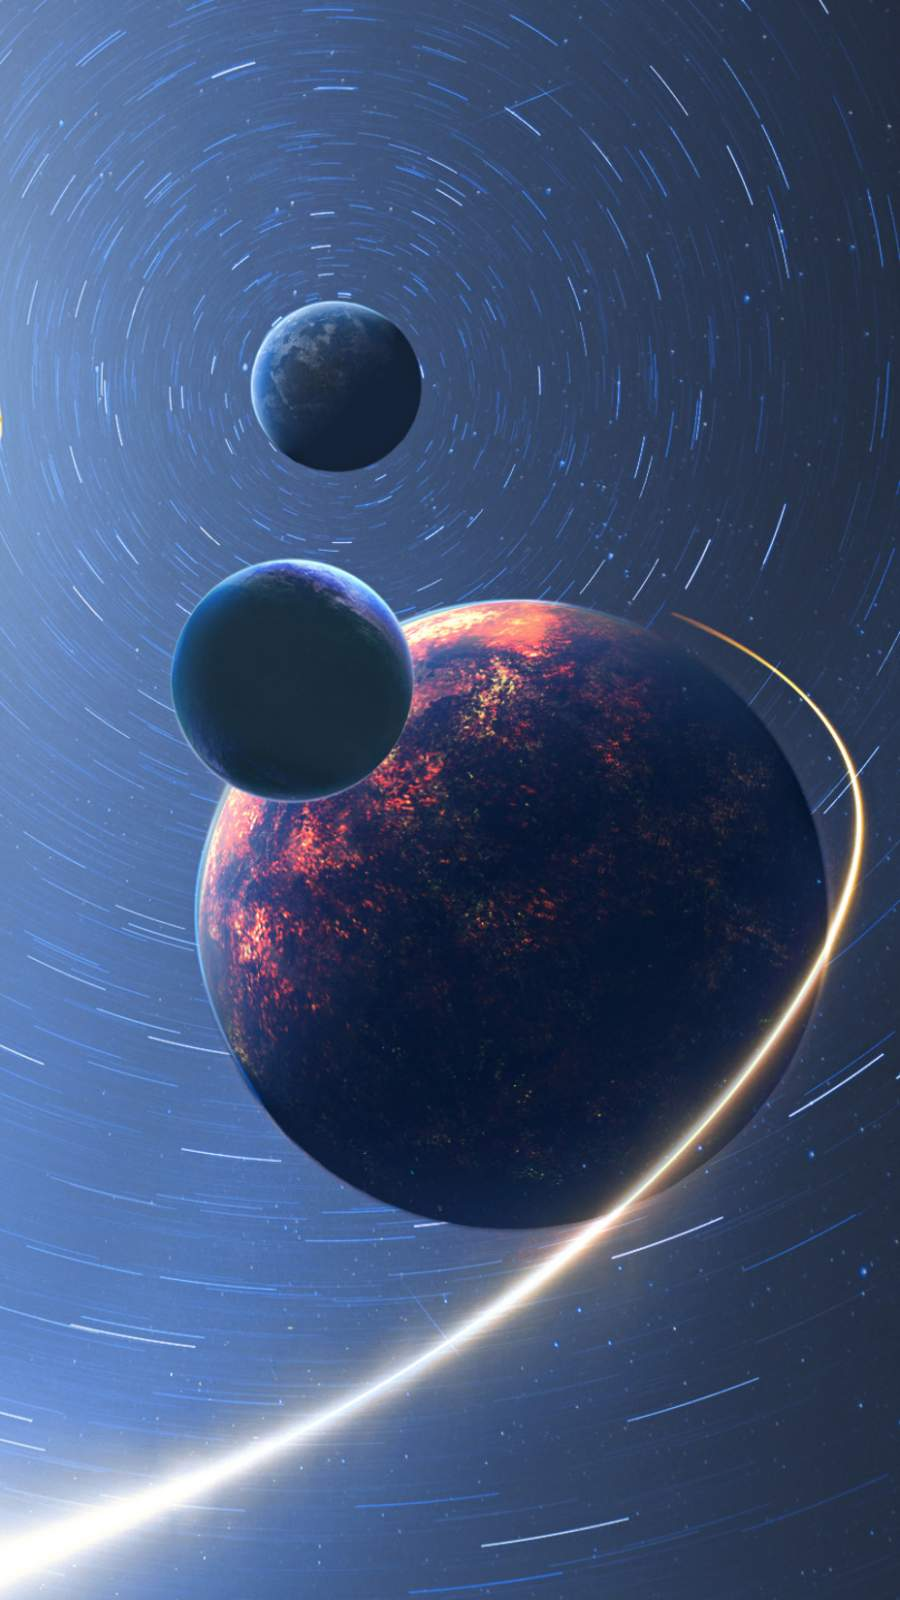 Space Planets iPhone Wallpaper